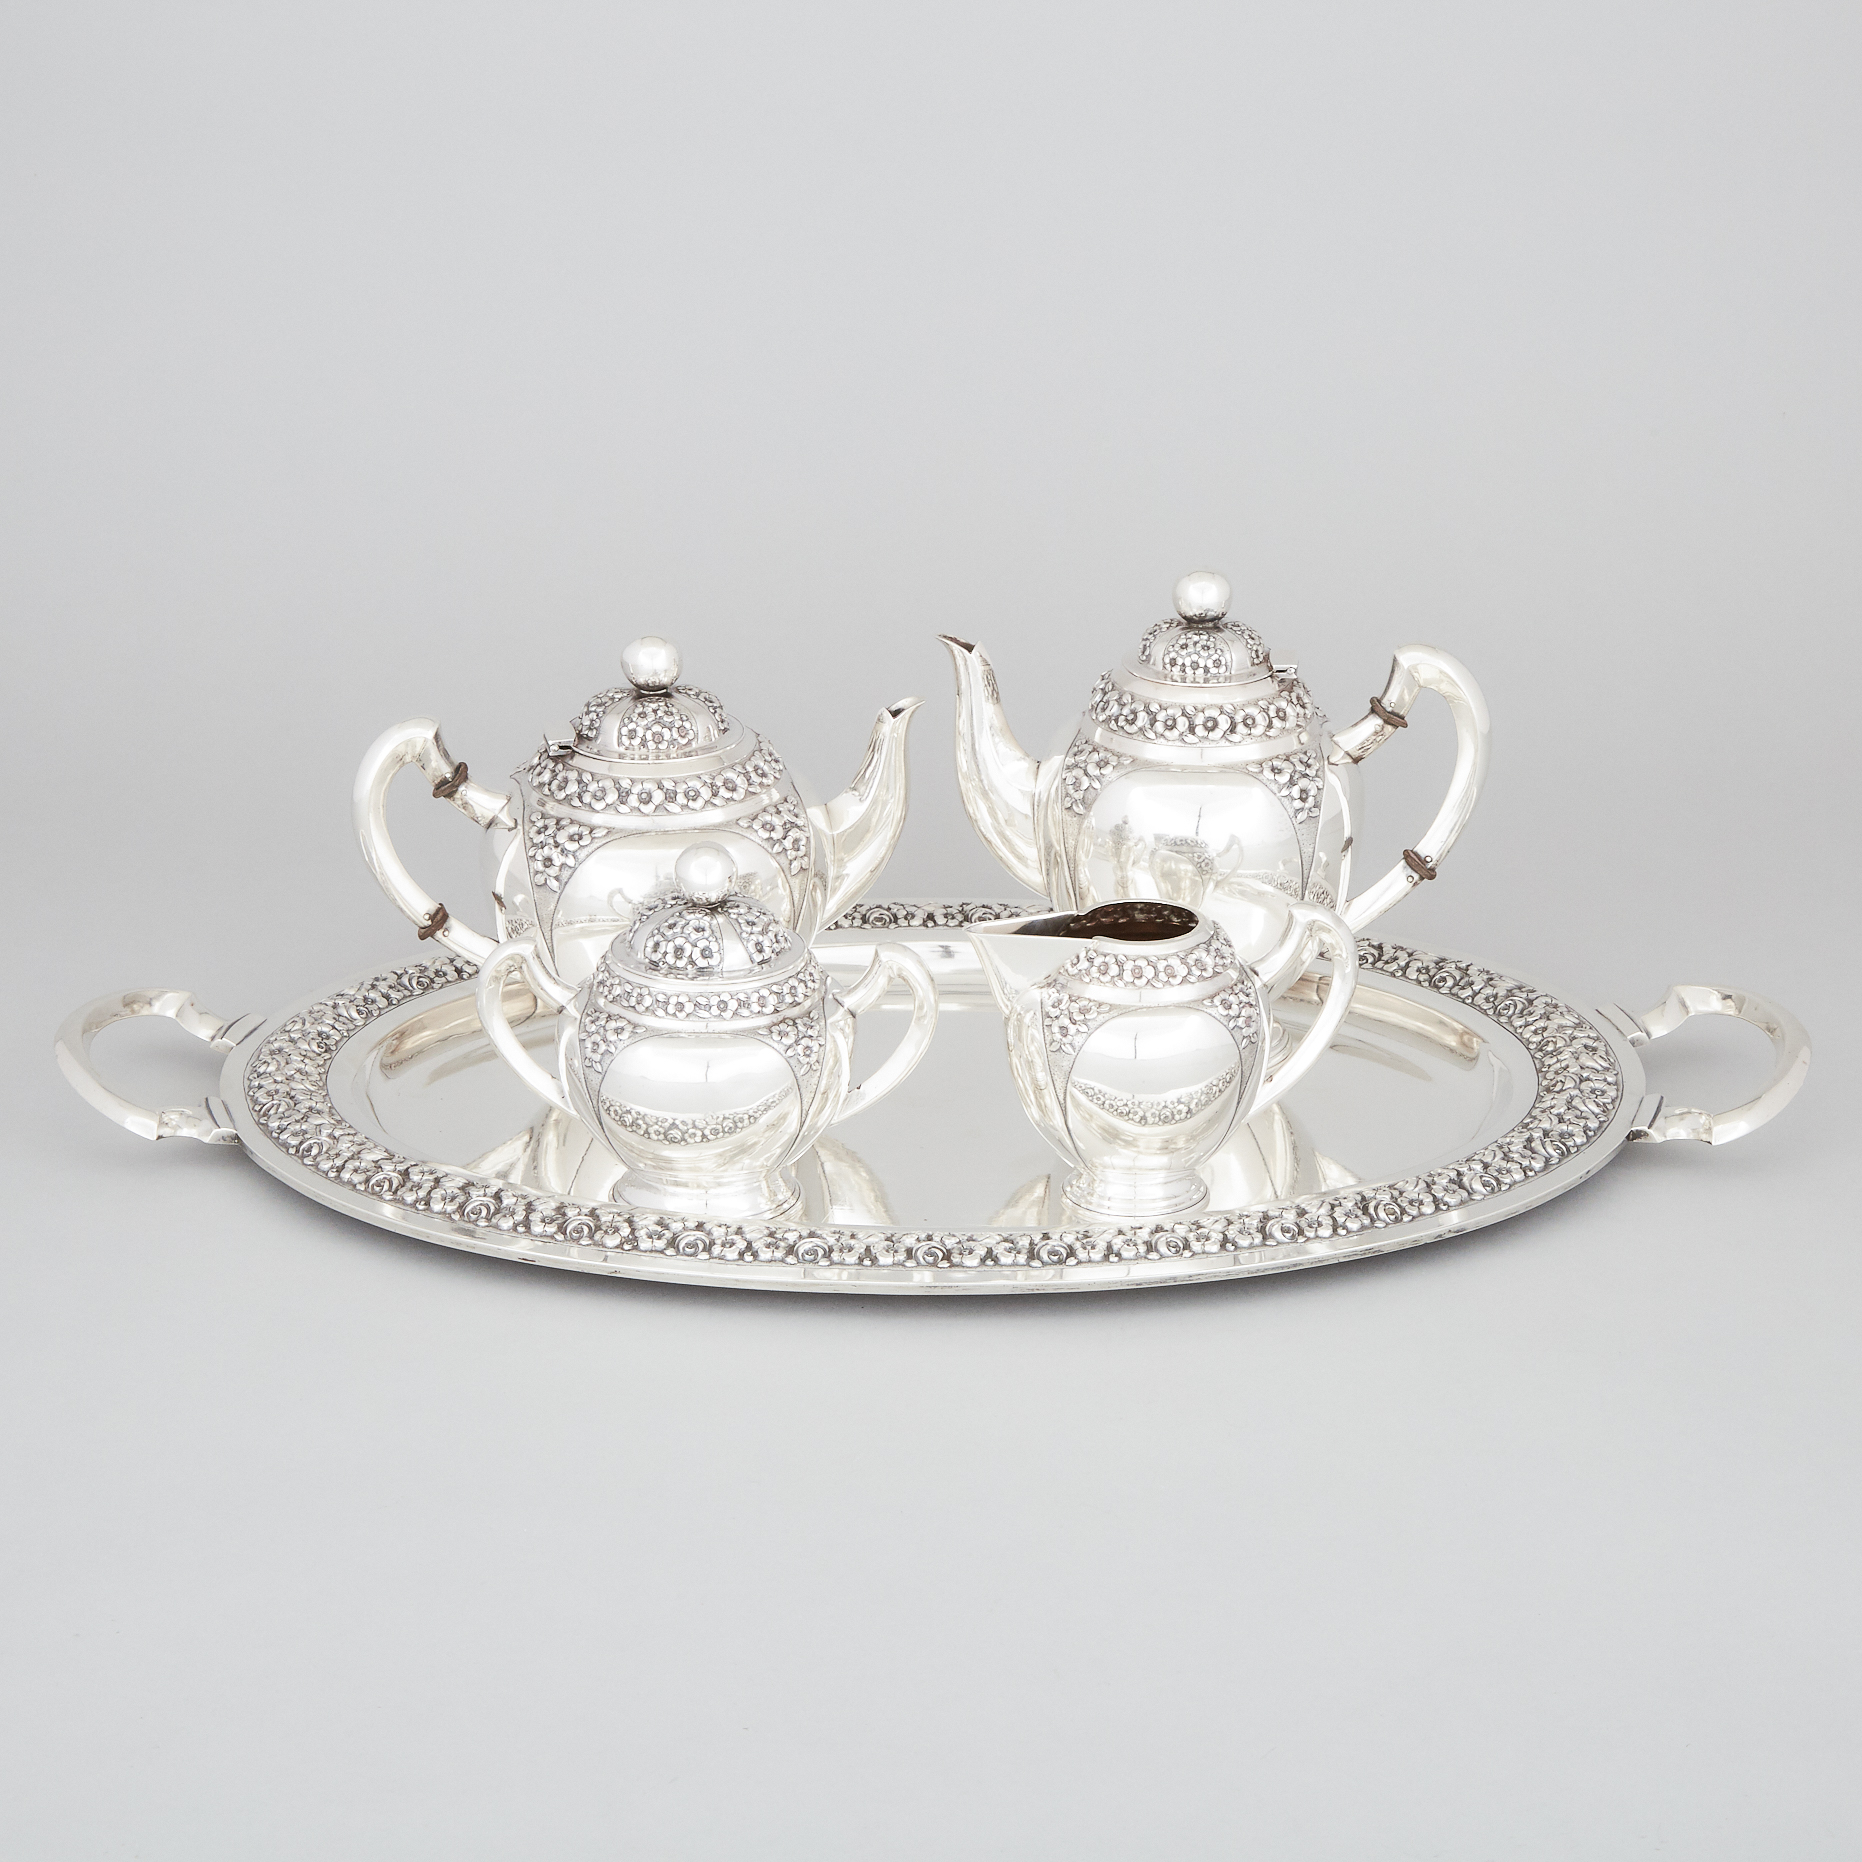 Portuguese Silver Tea and Coffee Service, Porto, 20th century